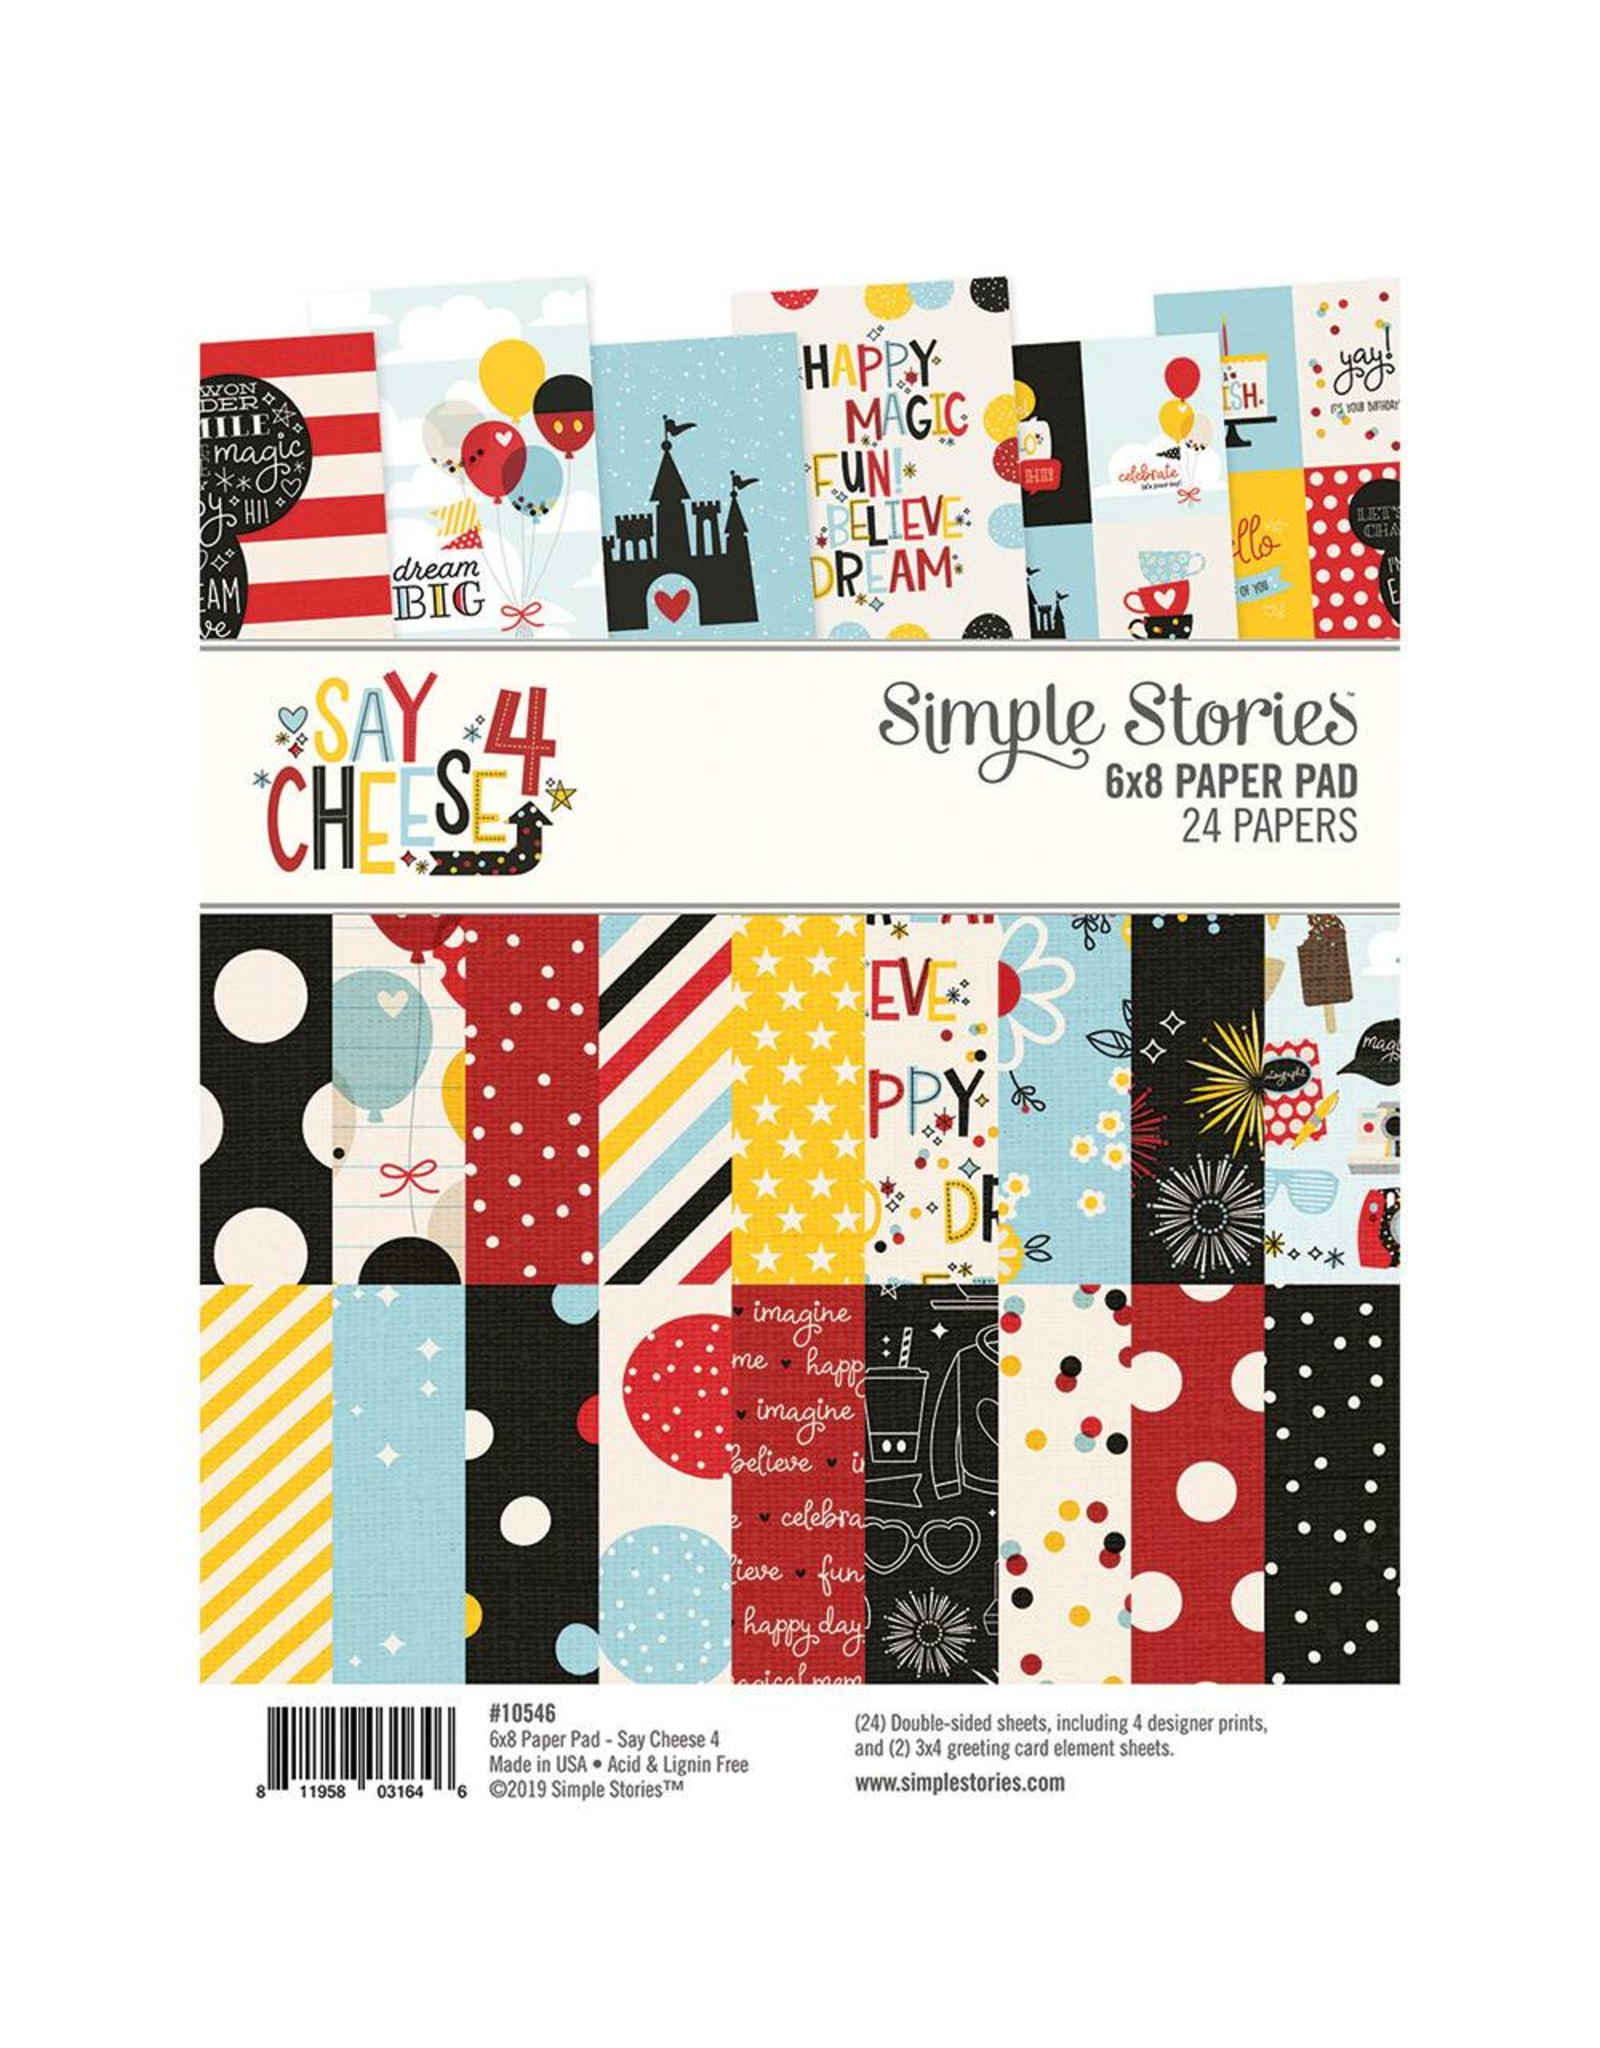 Simple Stories Simple Stories Say Cheese 4 6x8 Pad